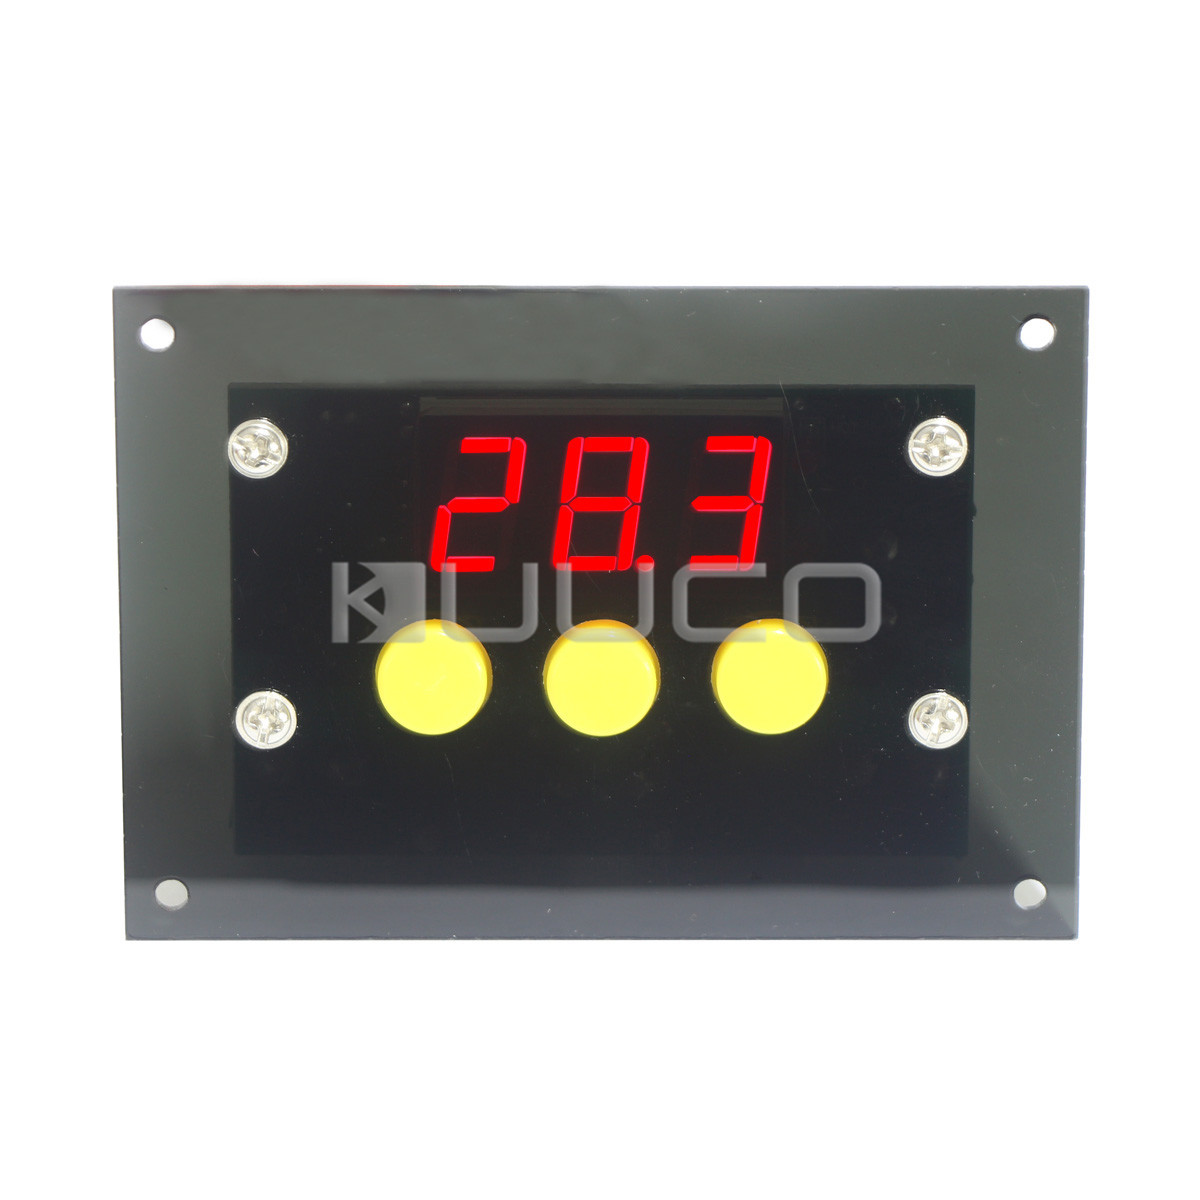 Mini Temp Controller -50~110 Celsius Degrees Digital Thermostat DC/AC 12V Temperature Difference Control Switch uxcell temperature range ac 250v 16a 3 terminals no nc temperature control capillary thermostat 50 300c 50 300c